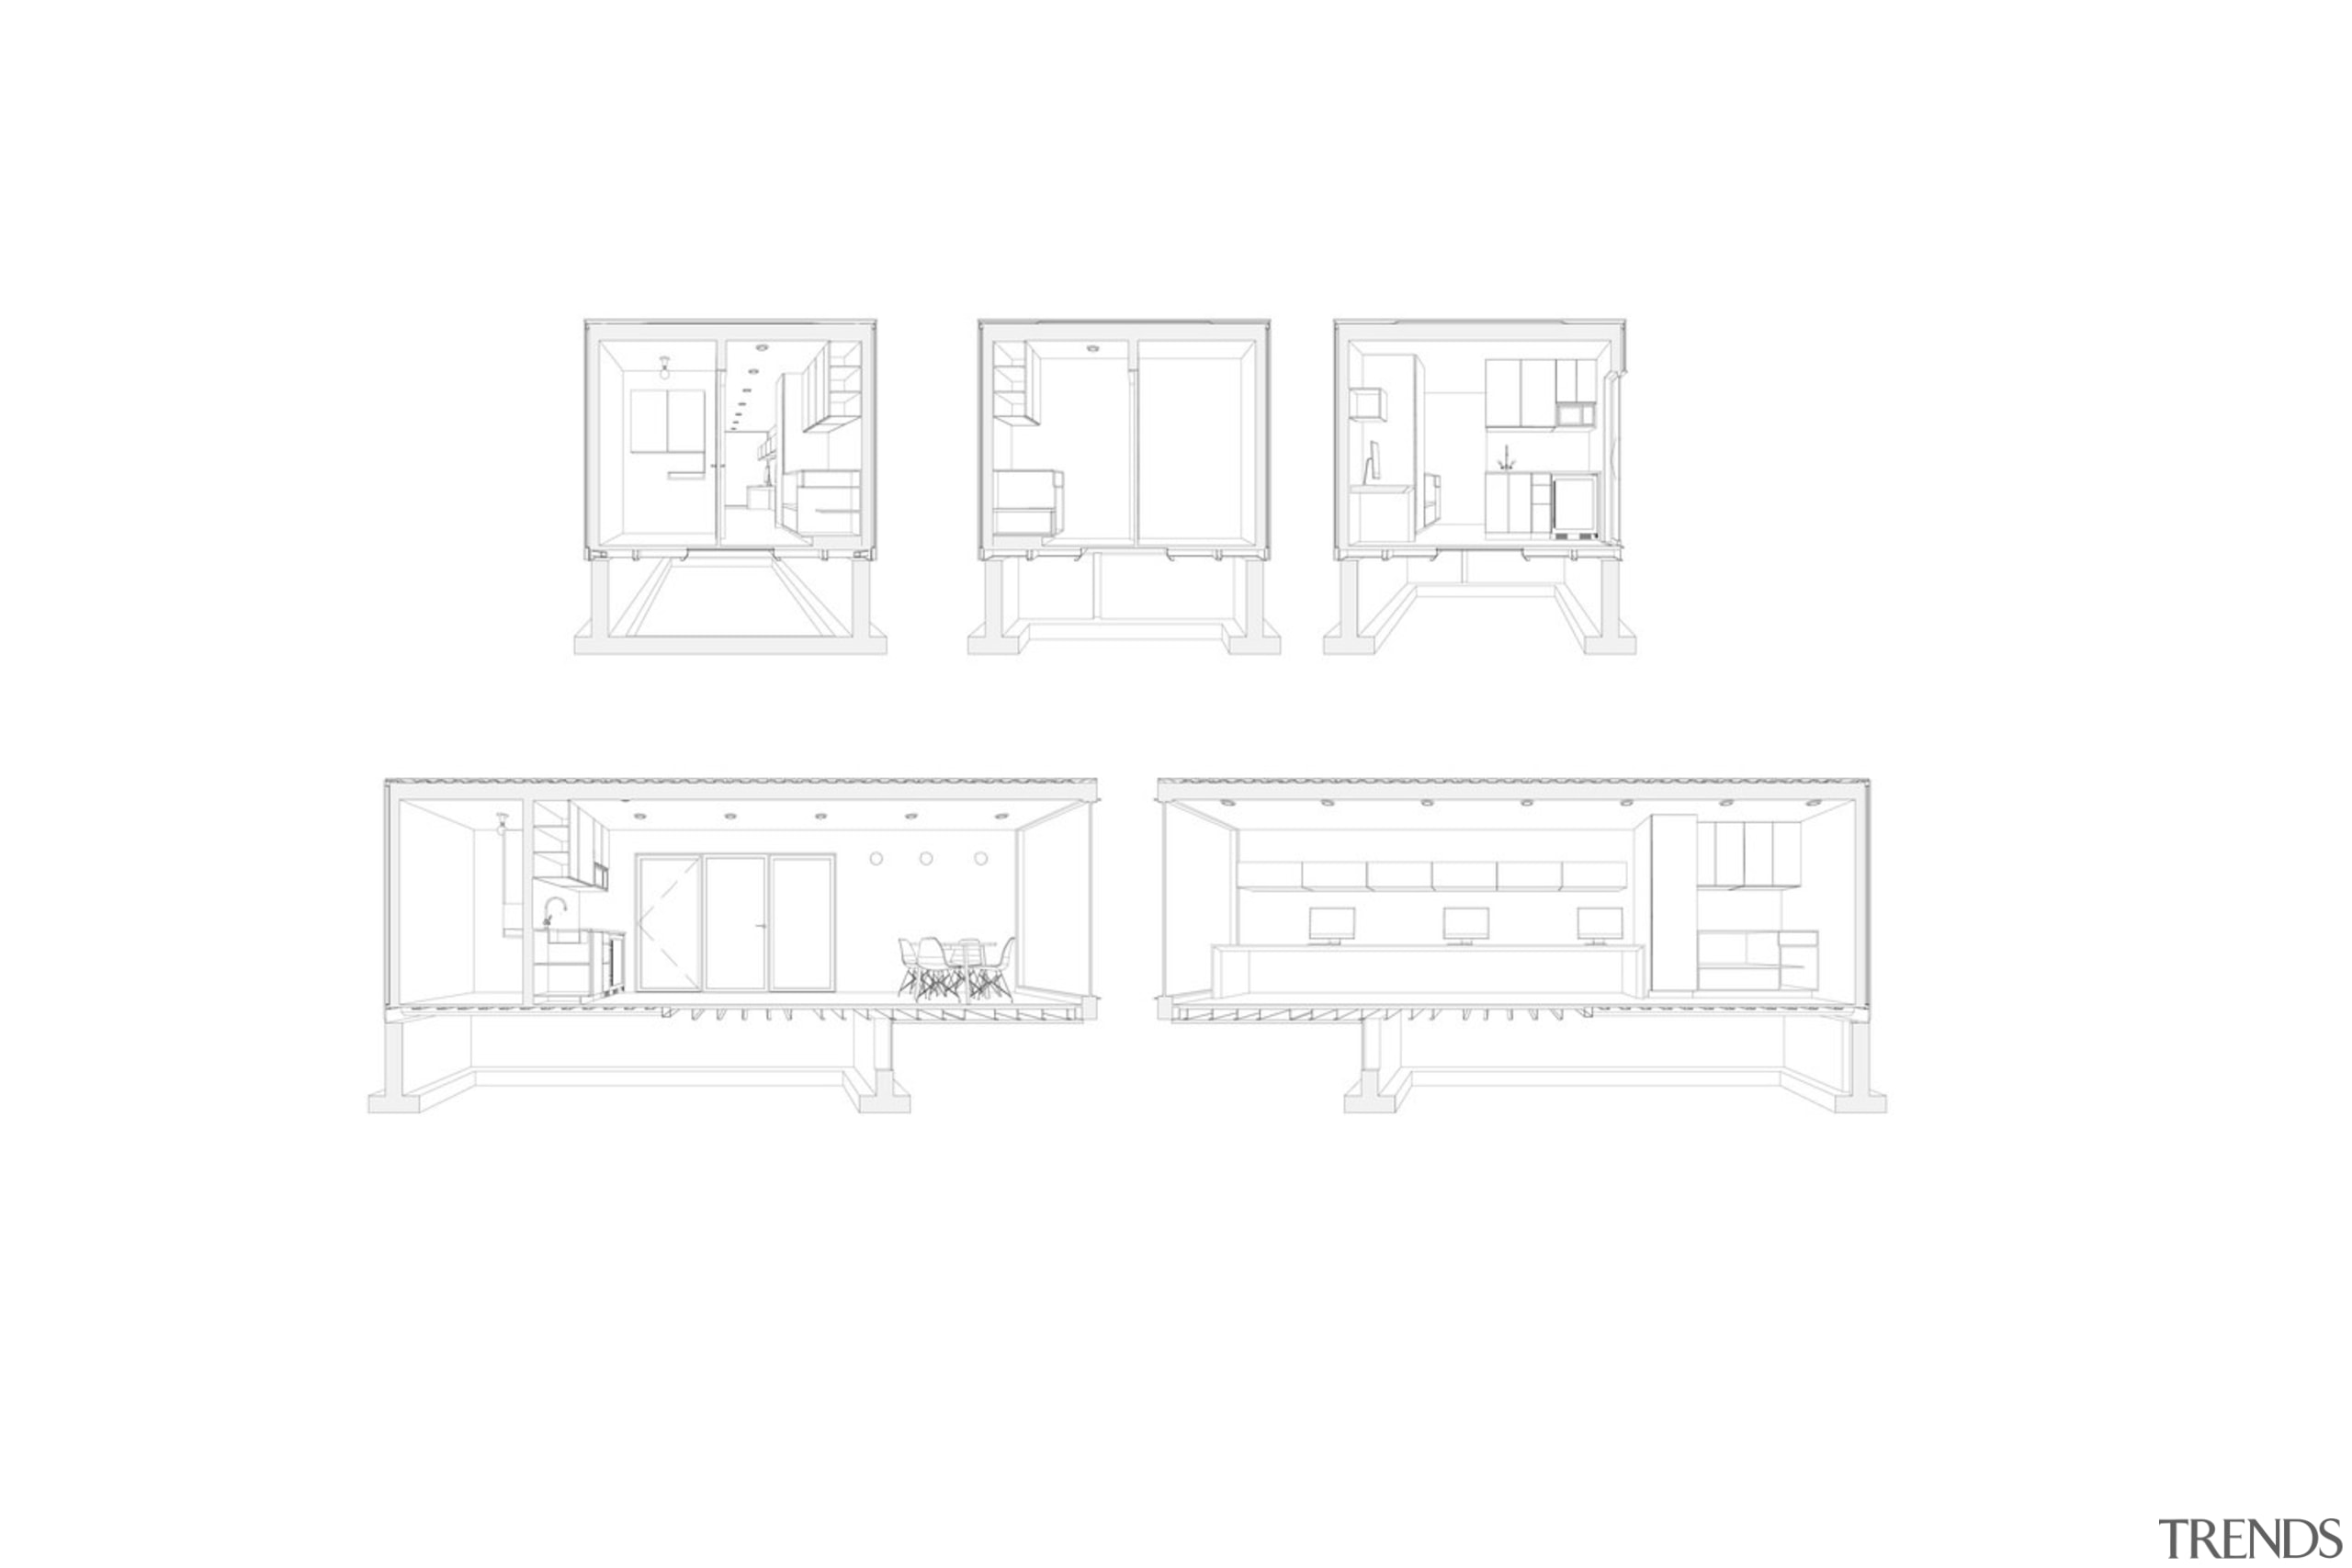 Architect in residence - angle | area | angle, area, black and white, design, diagram, font, line, product, rectangle, structure, text, white